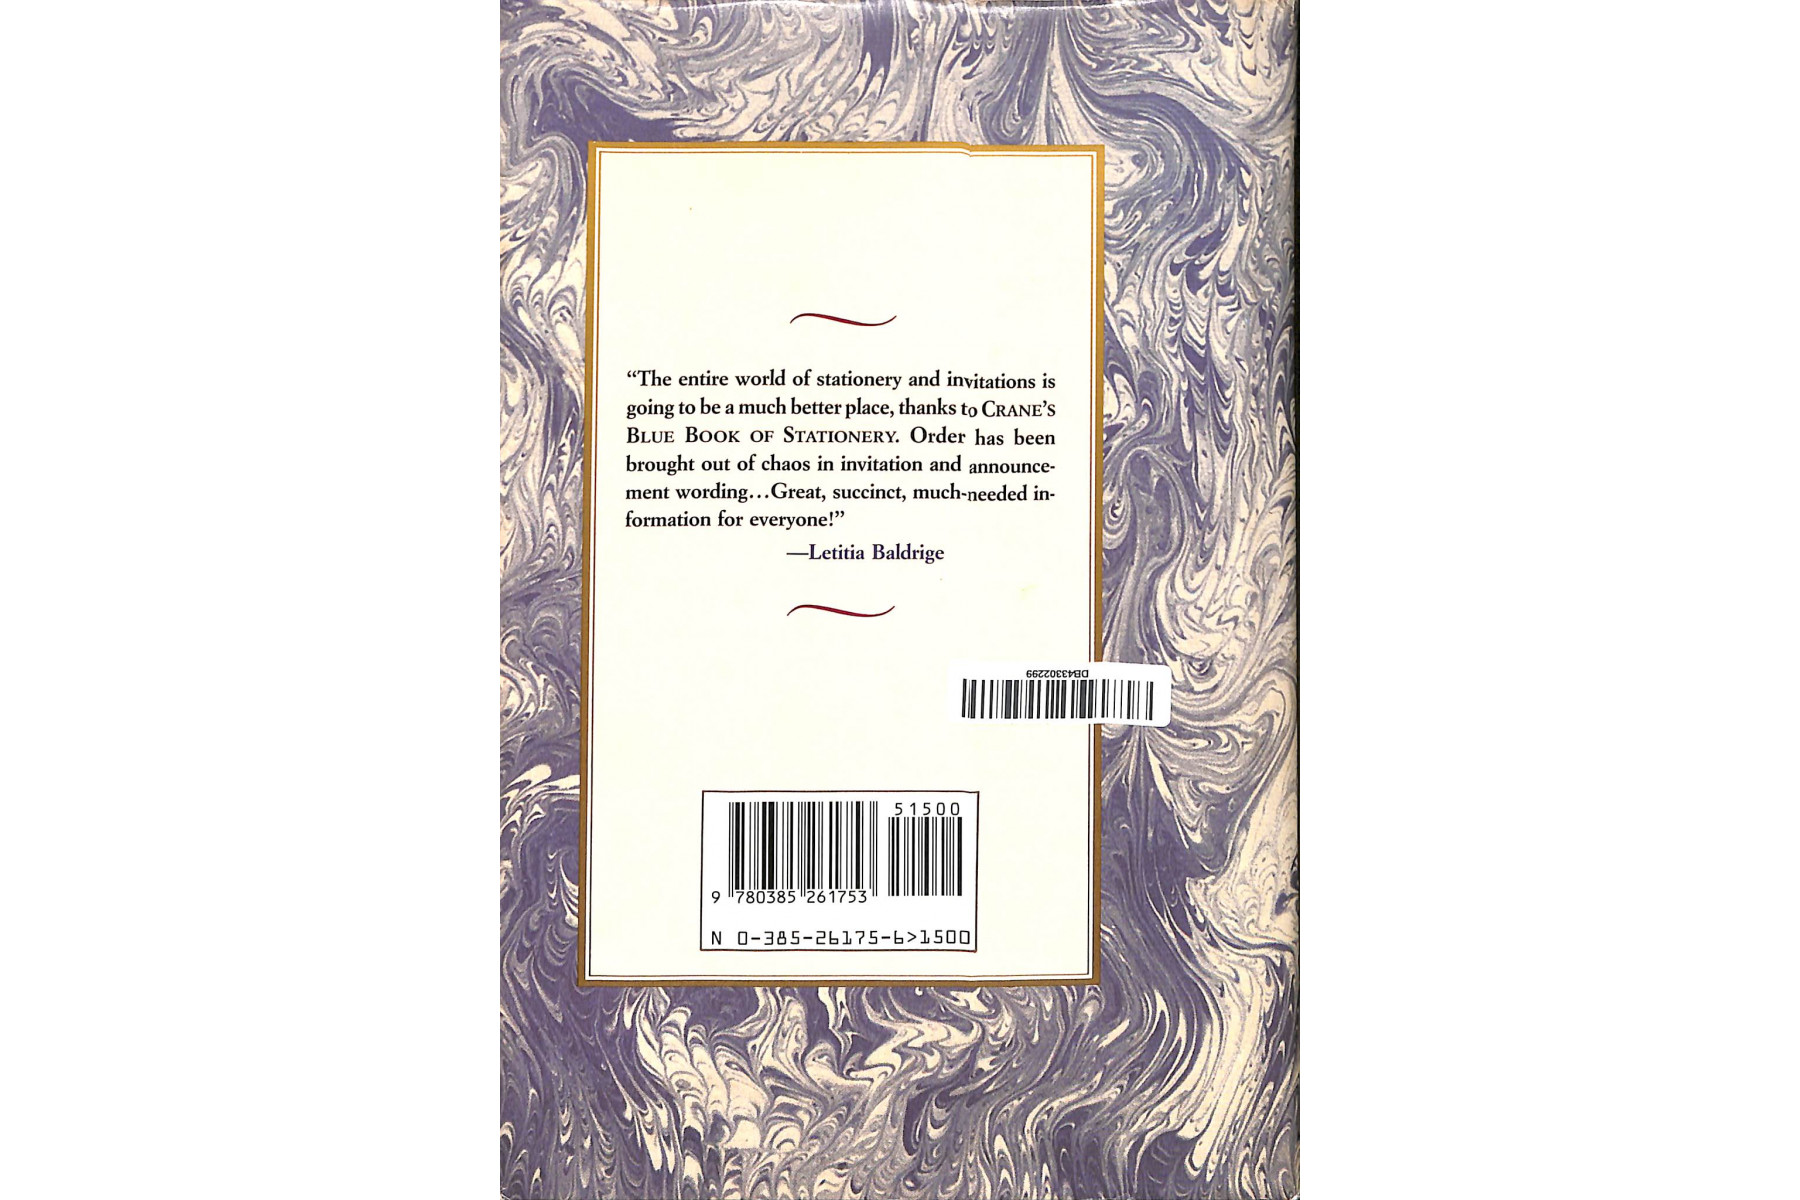 Crane's Blue Book of Stationery: The Styles and Etiquette of Letters, Notes, and Invitations